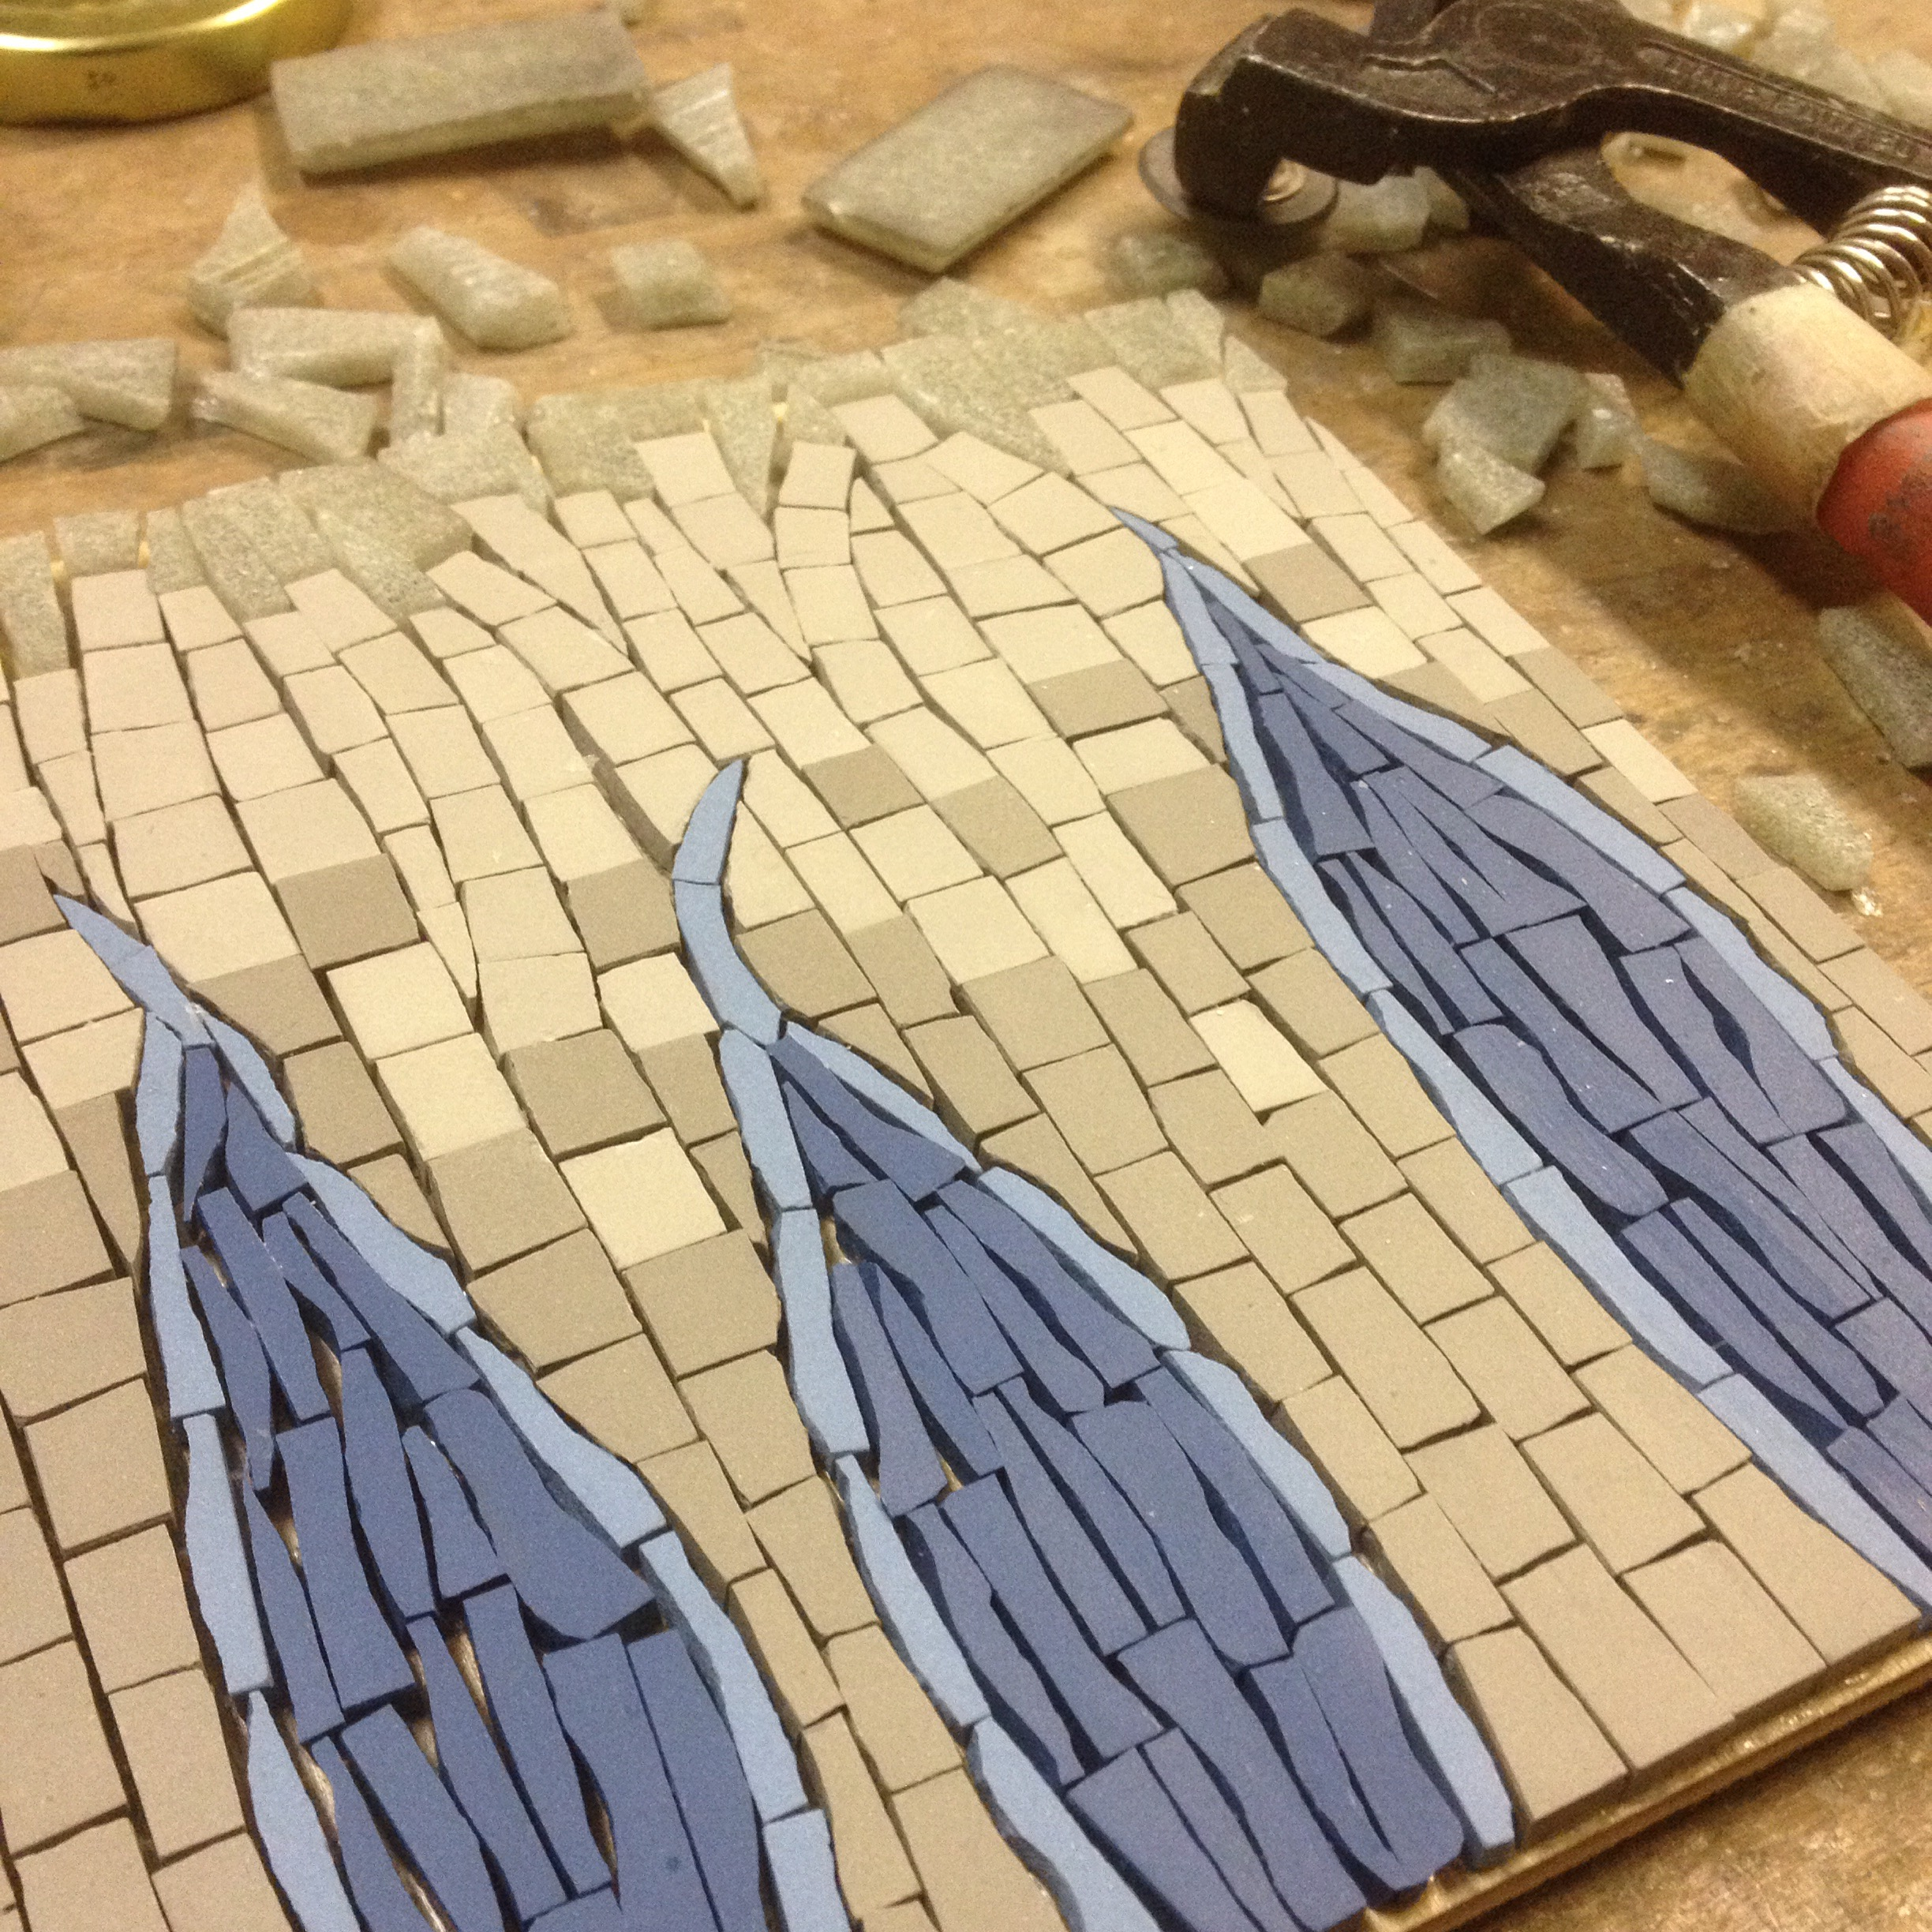 Science inspired mosaic in progress